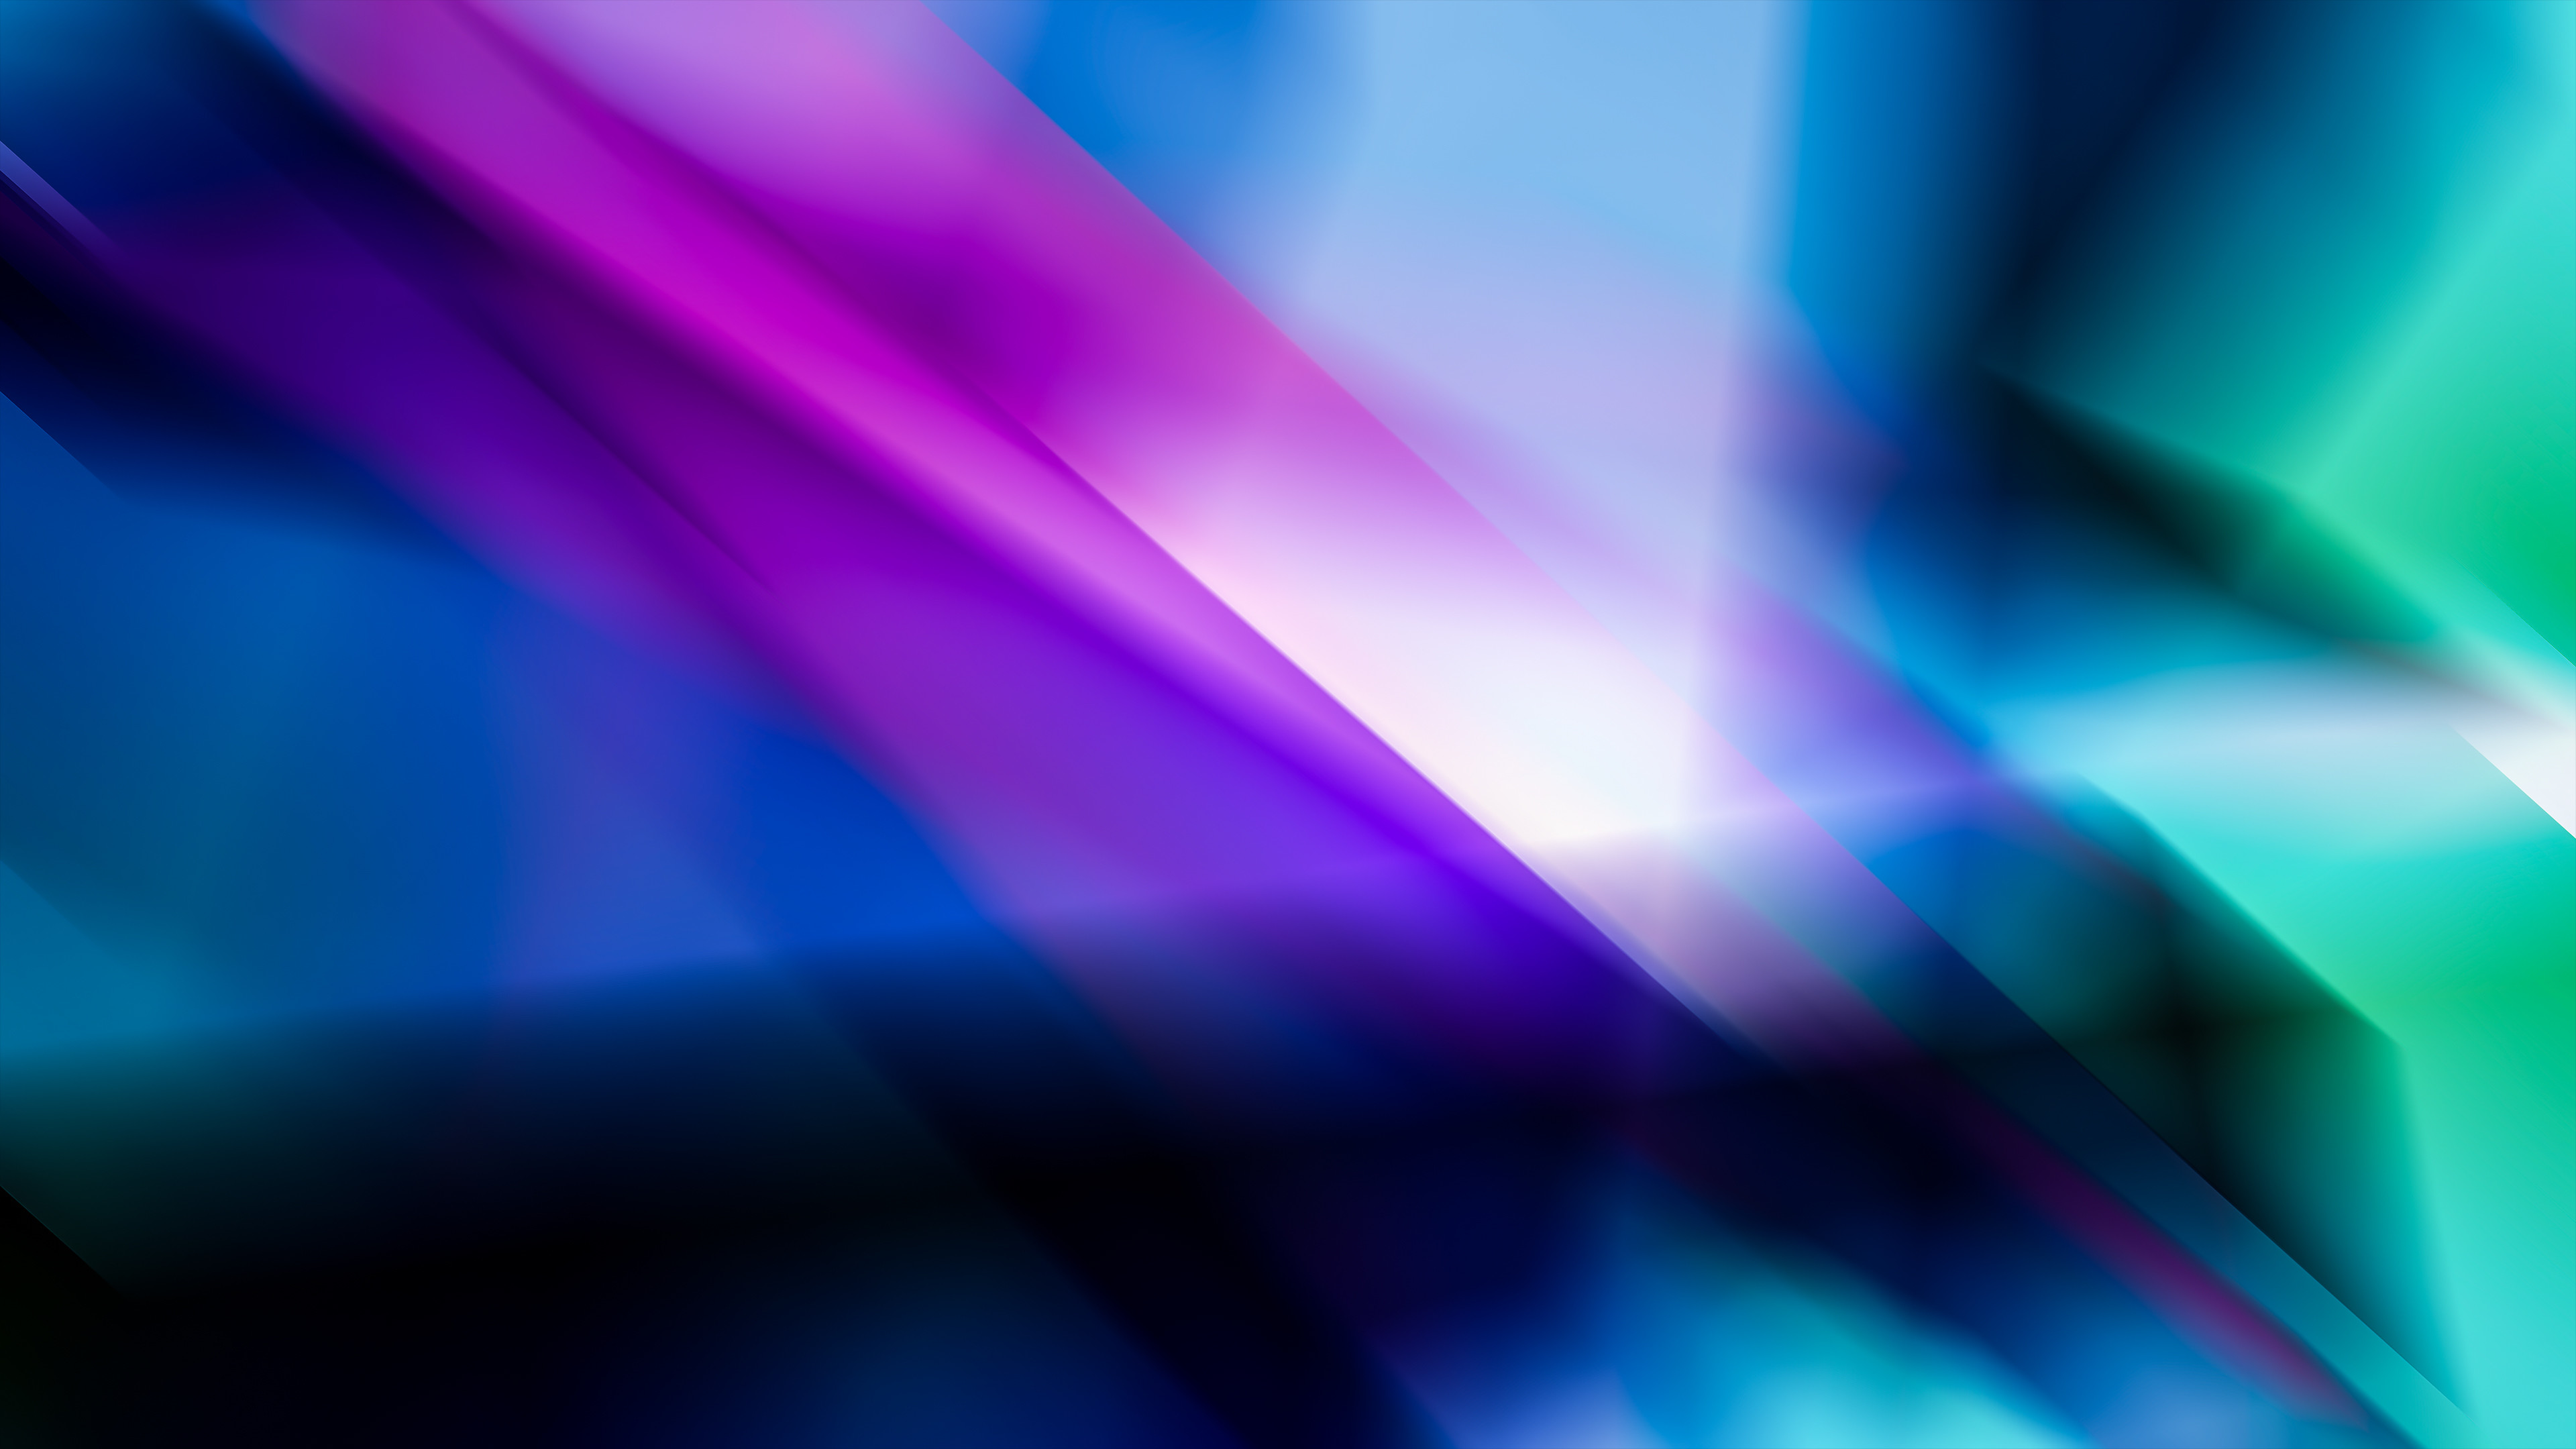 prism crystal lines abstract 4k eb 3840x2160 1 - Prism Crystal Lines -